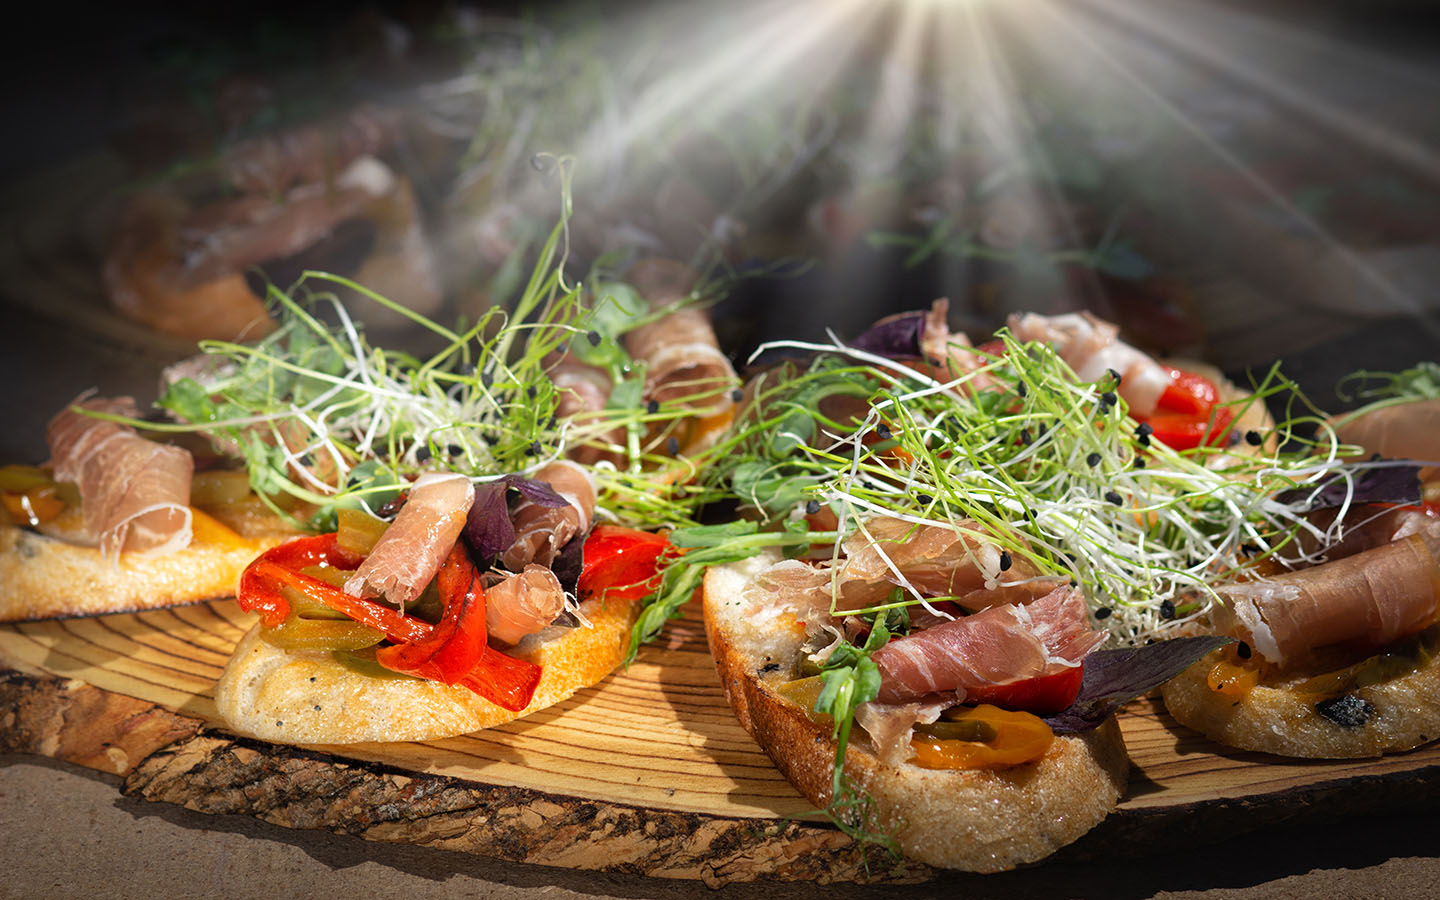 platter with different bruschetta toppings